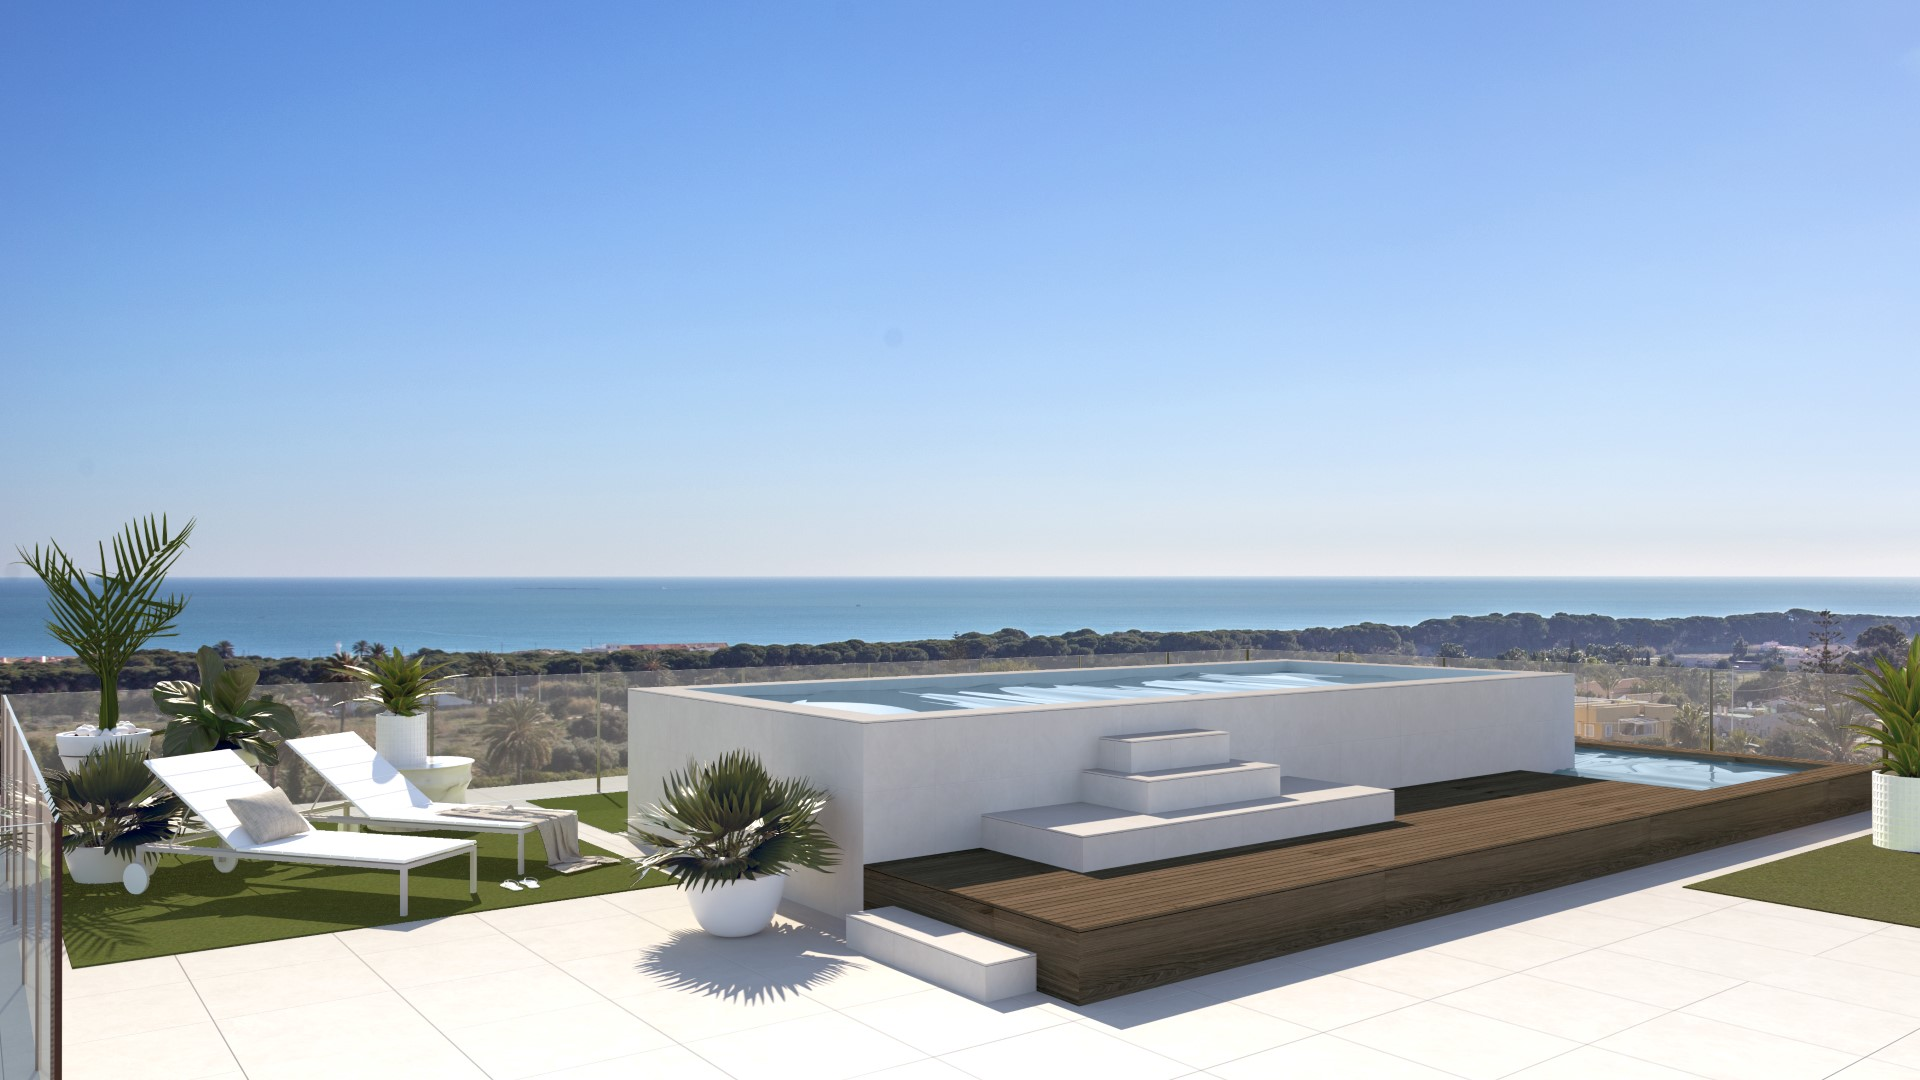 NAYA architects alicante amistad building in la marina pool